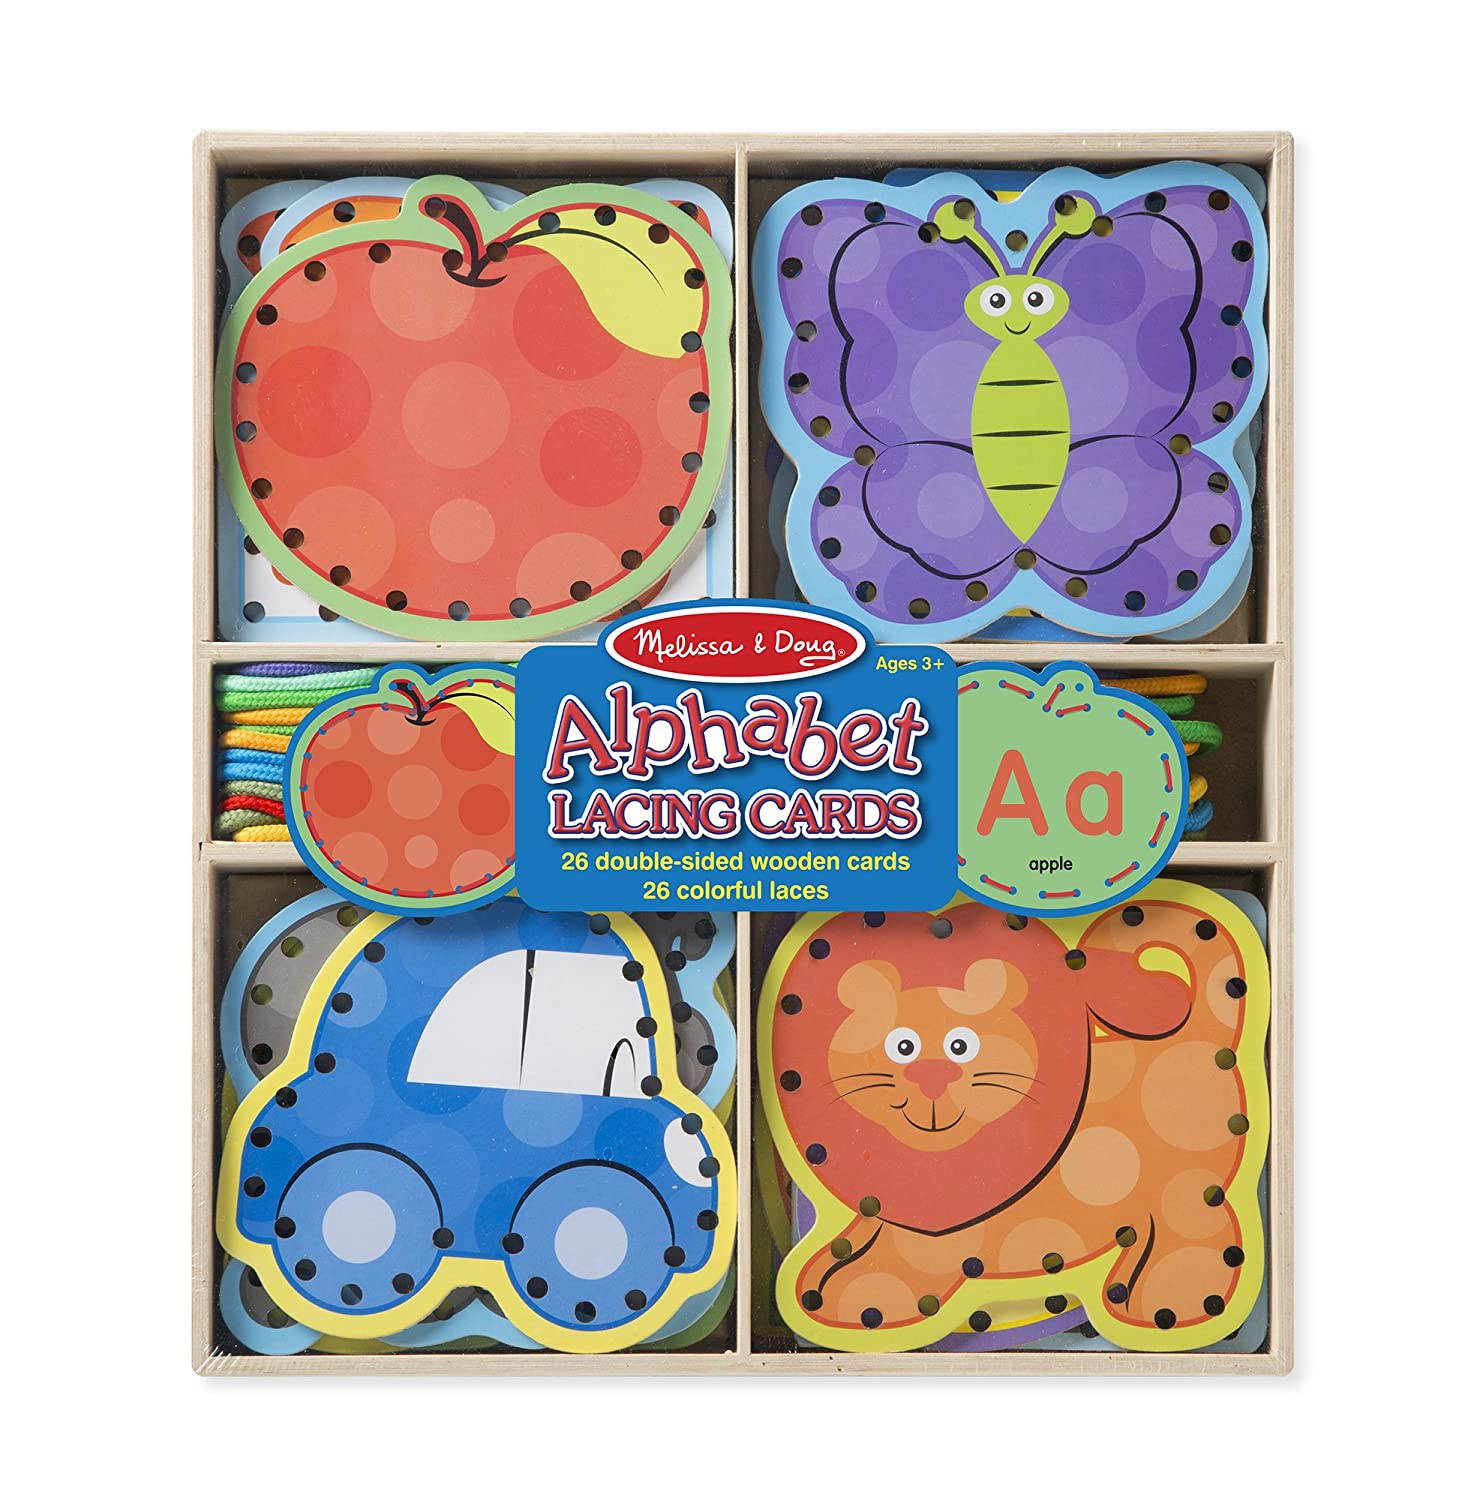 Amazon.com: Melissa & Doug Alphabet Wooden Lacing Cards With Double ...